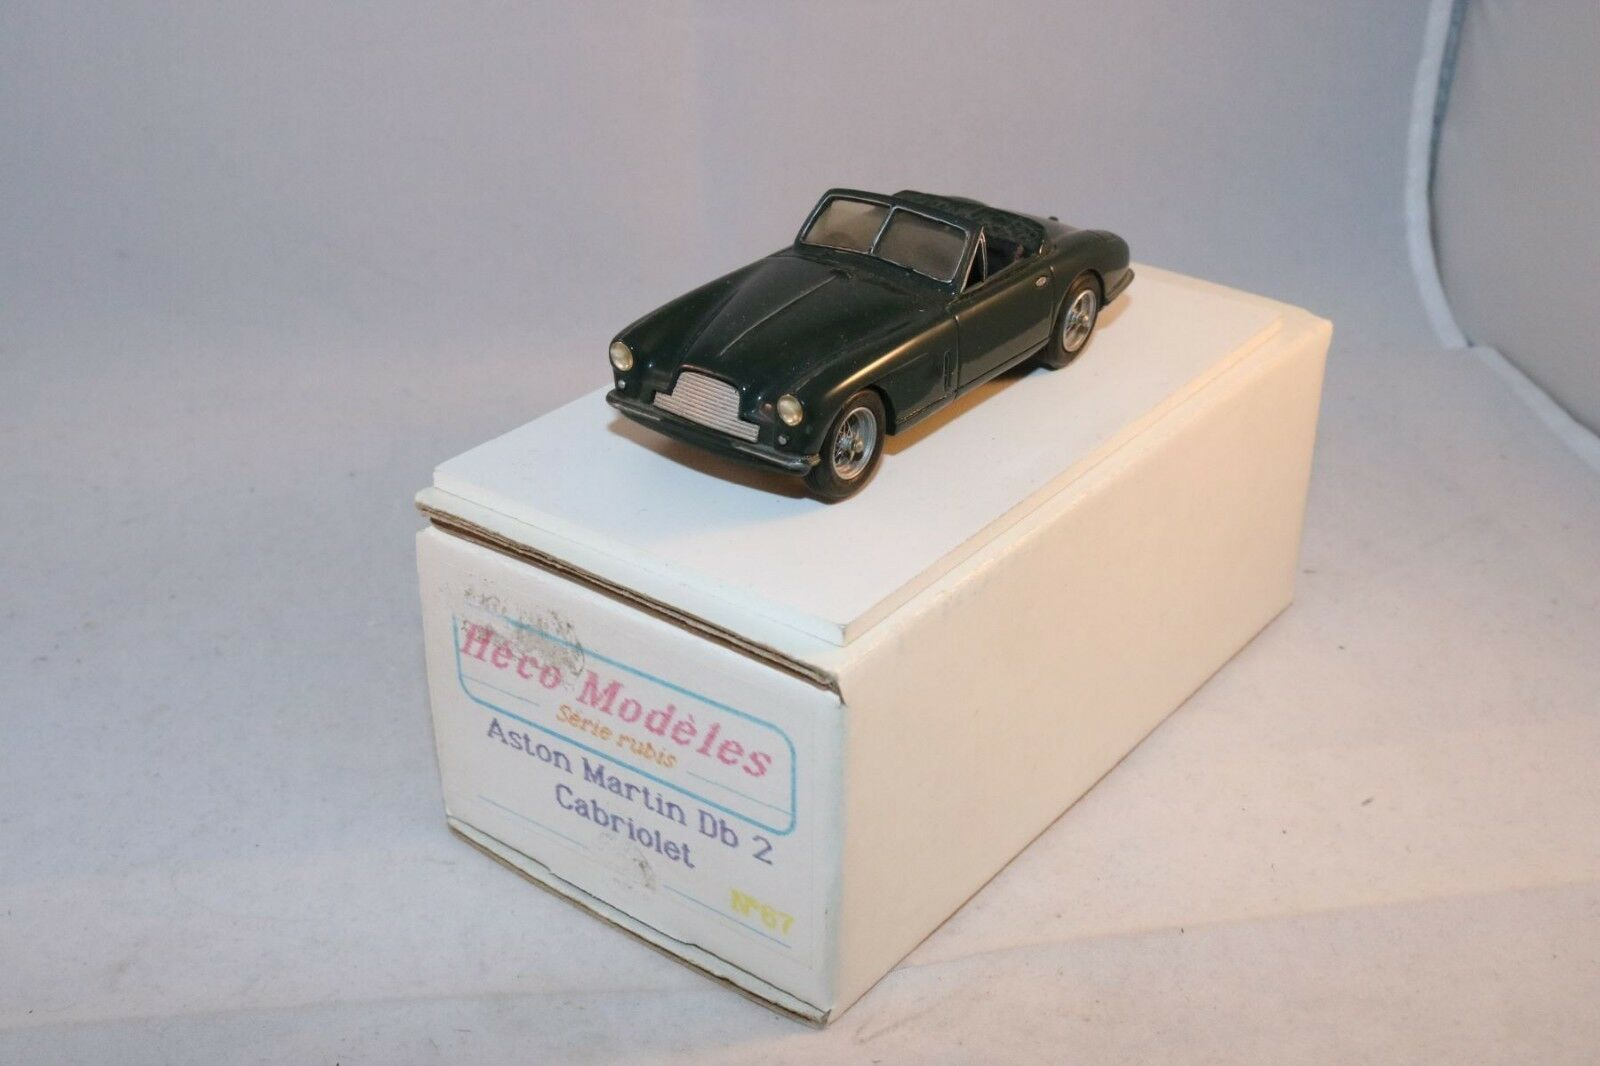 Heco Modeles 87 Aston Martin DB 2 Cabriolet kit hand built perfect mint in box